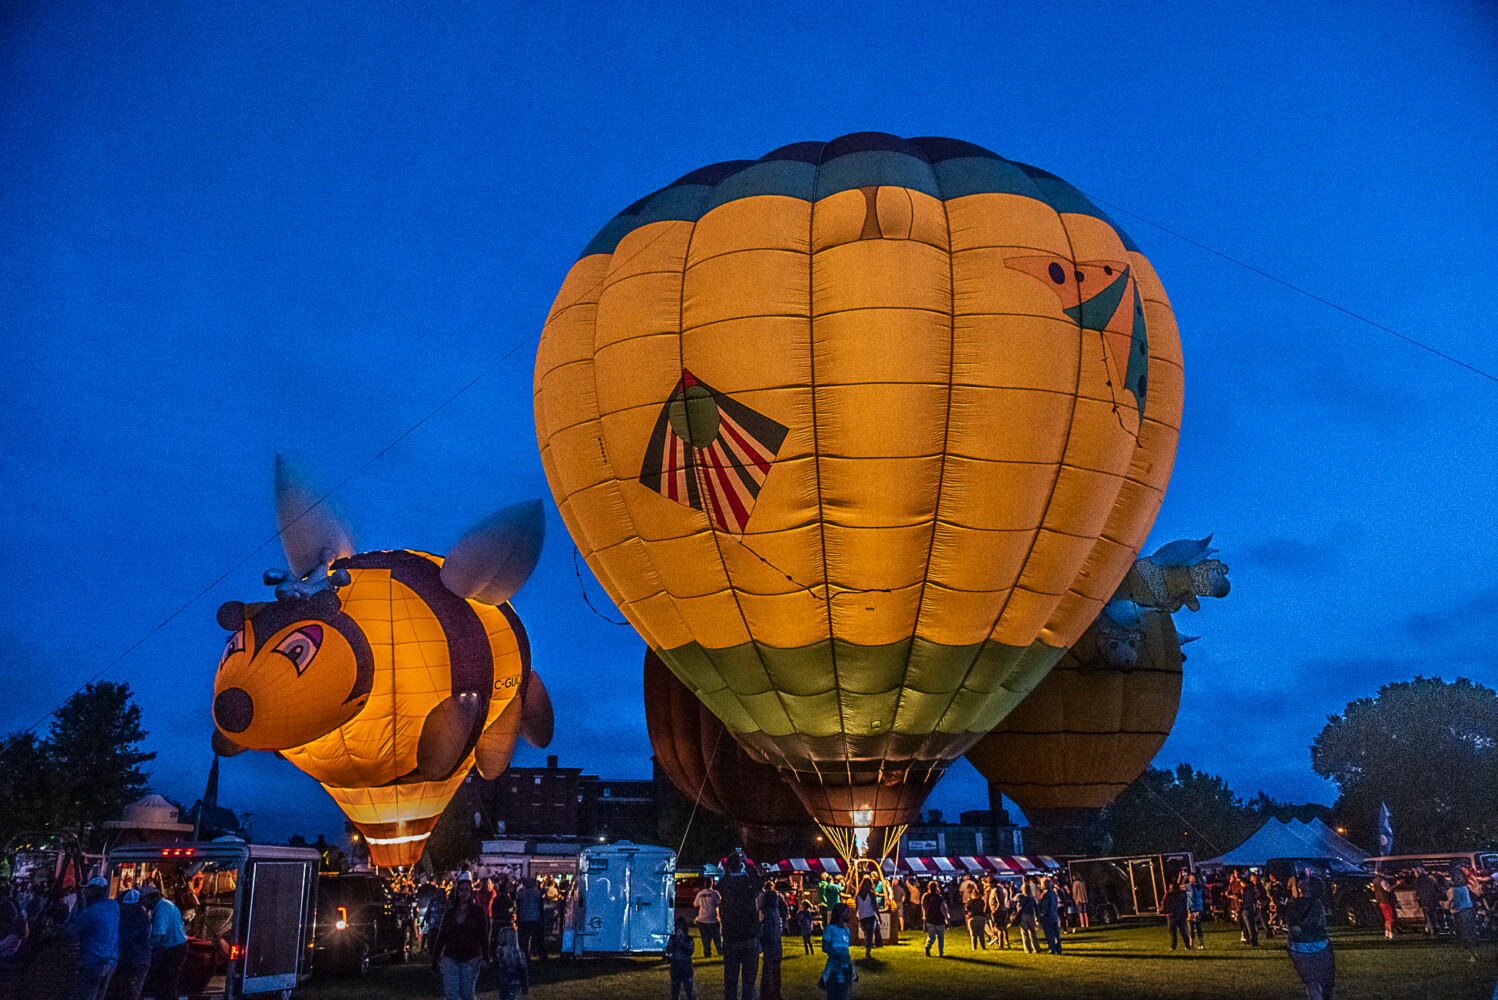 Positive attitudes come out on top … even though balloons didn't - CentralMaine.com